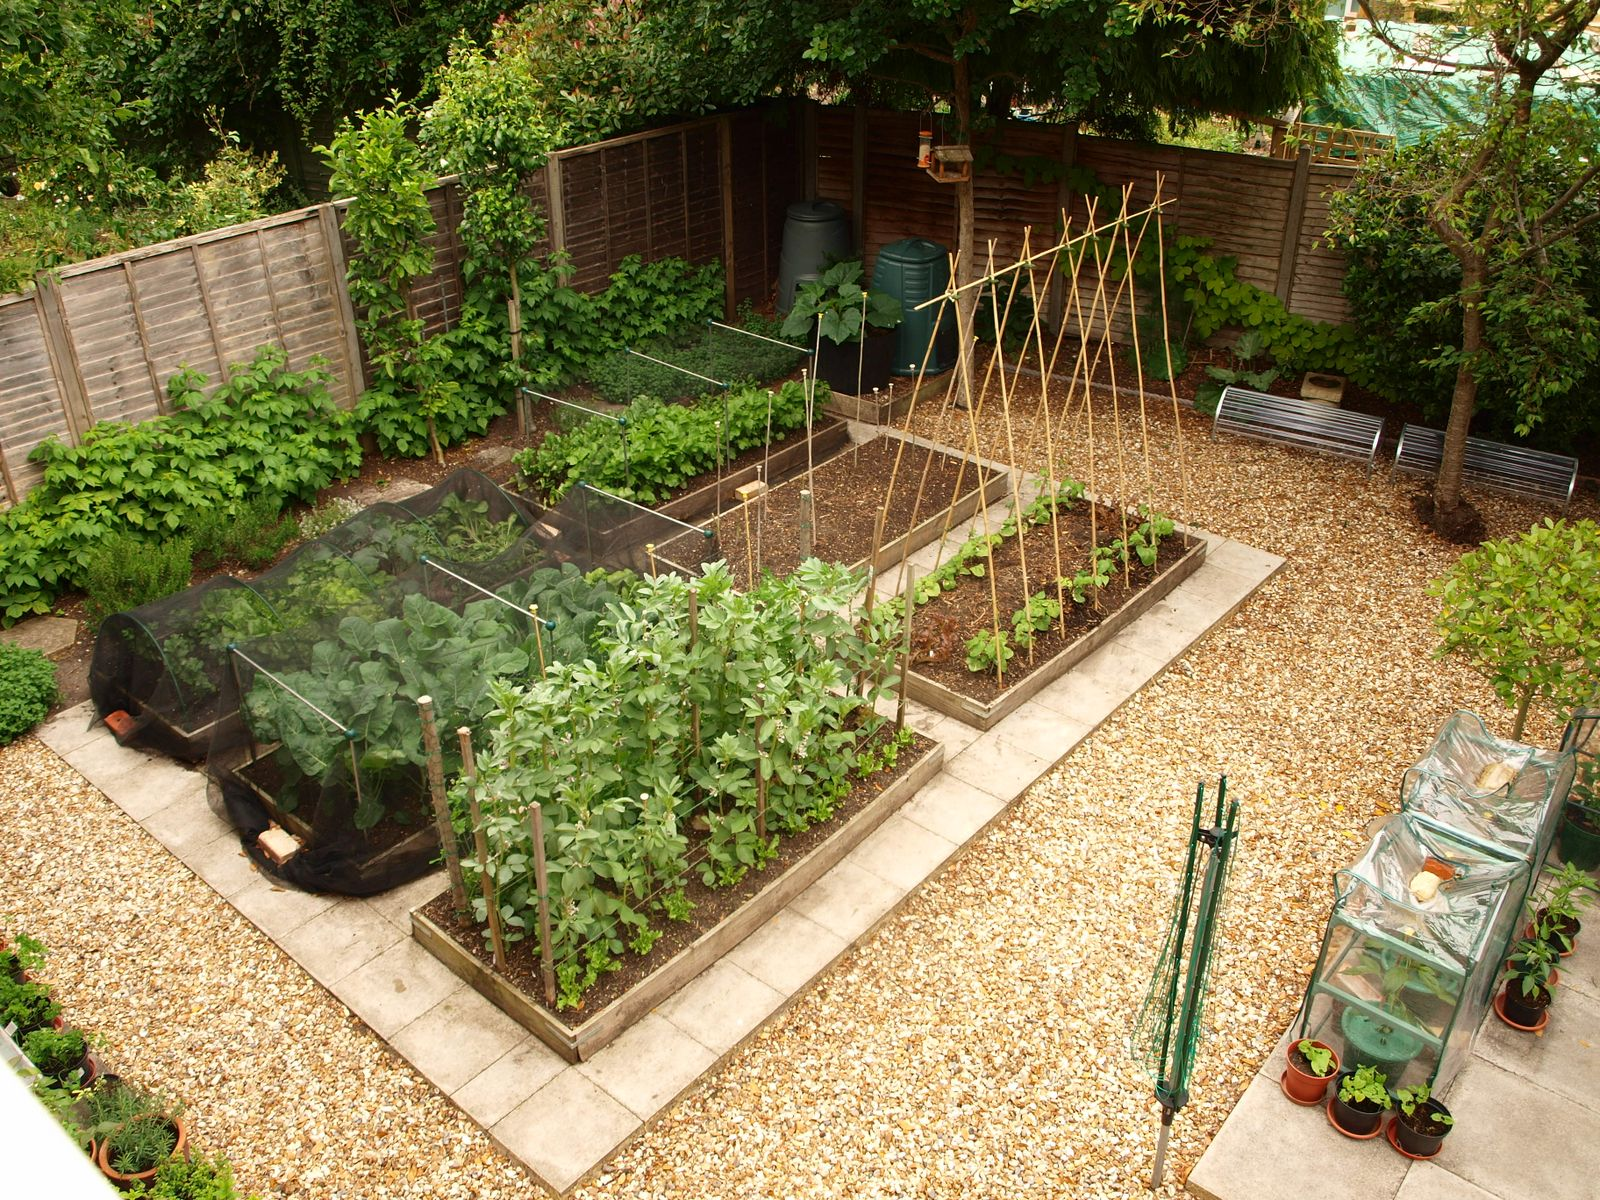 Mark 39 s veg plot gardening advice for beginners part 1 for Garden layout ideas